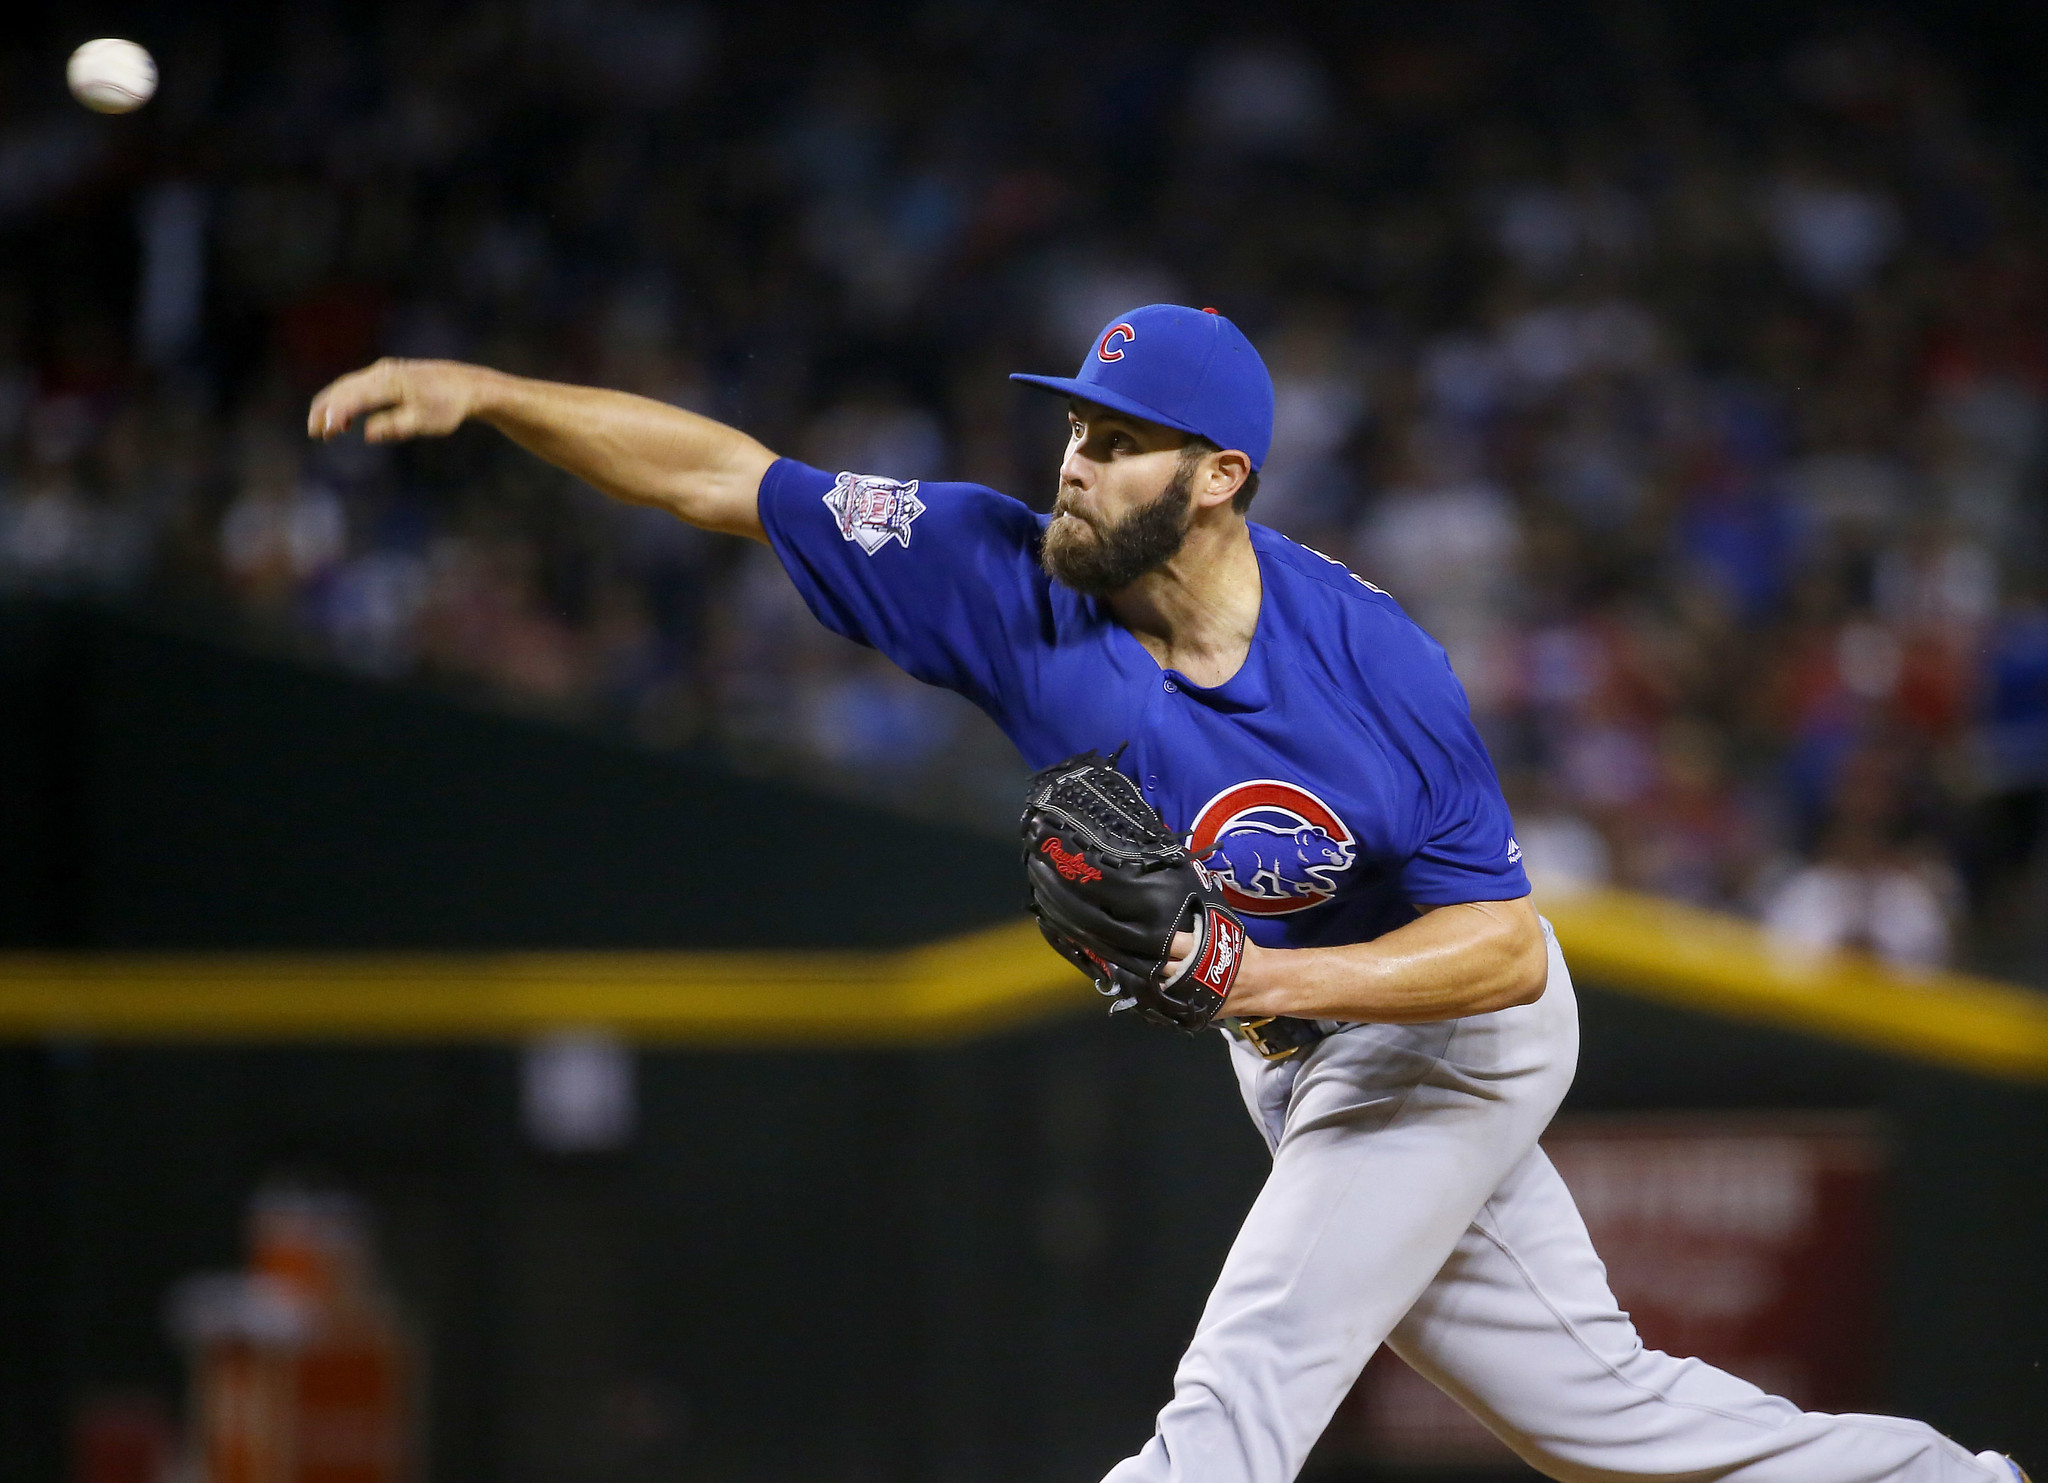 Ct-pitching-to-contact-cubs-spt-0415-20160414